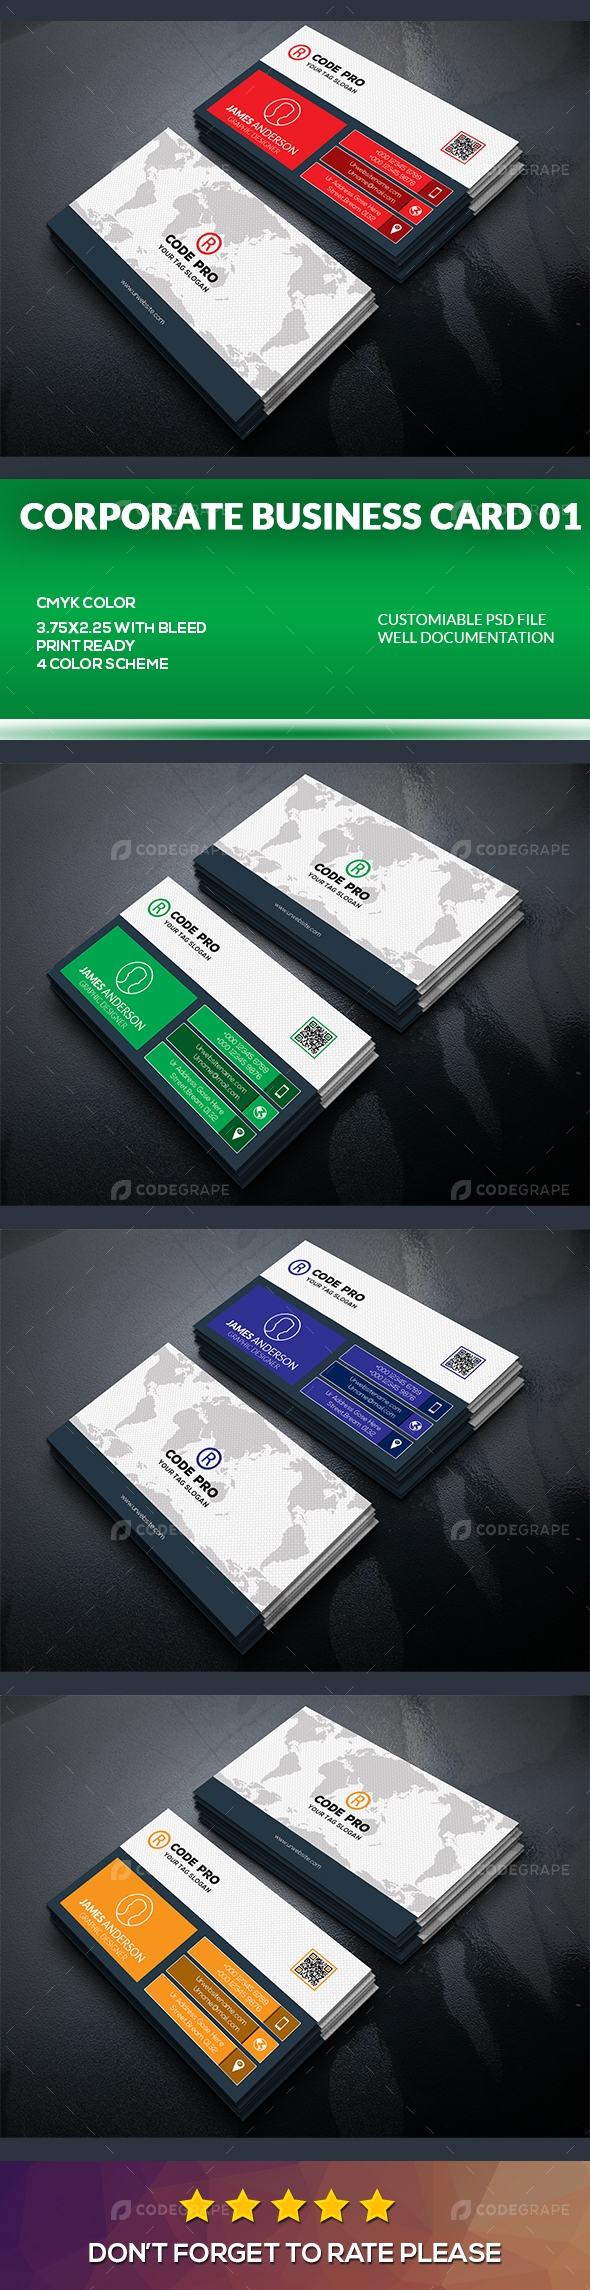 Corporate Business Card 01